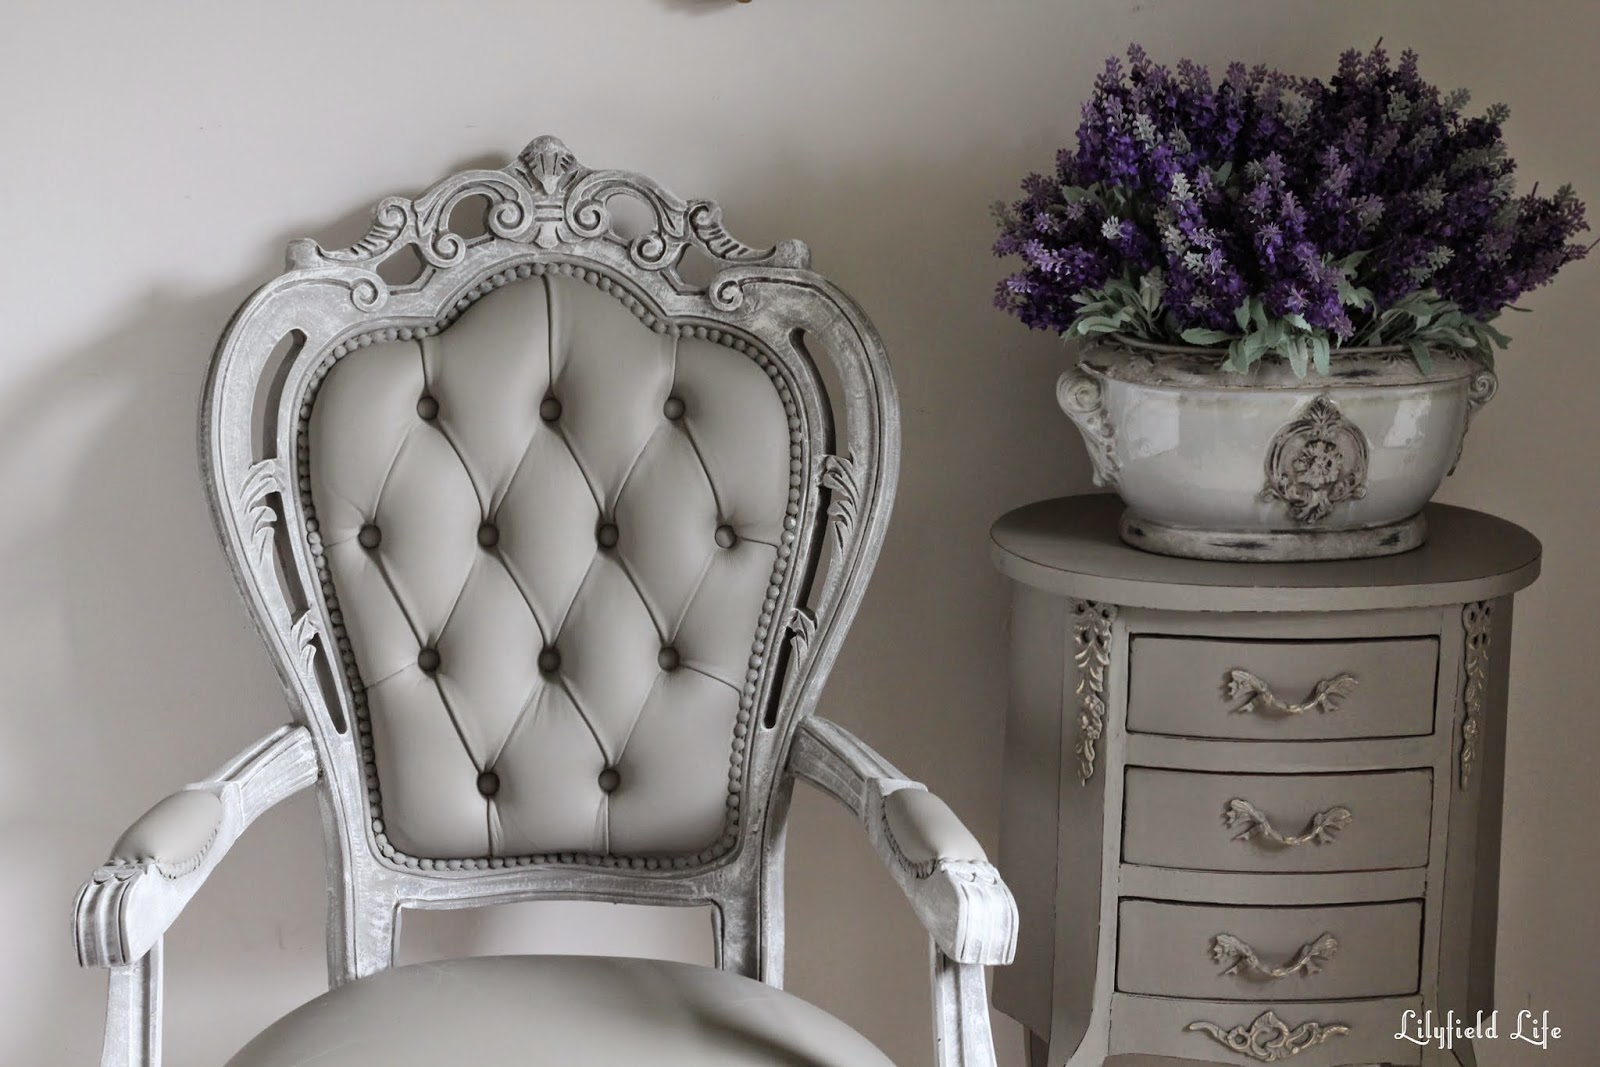 Http://www.lilyfieldlife.com/2015/02/how To Paint Vinyl Chair.html